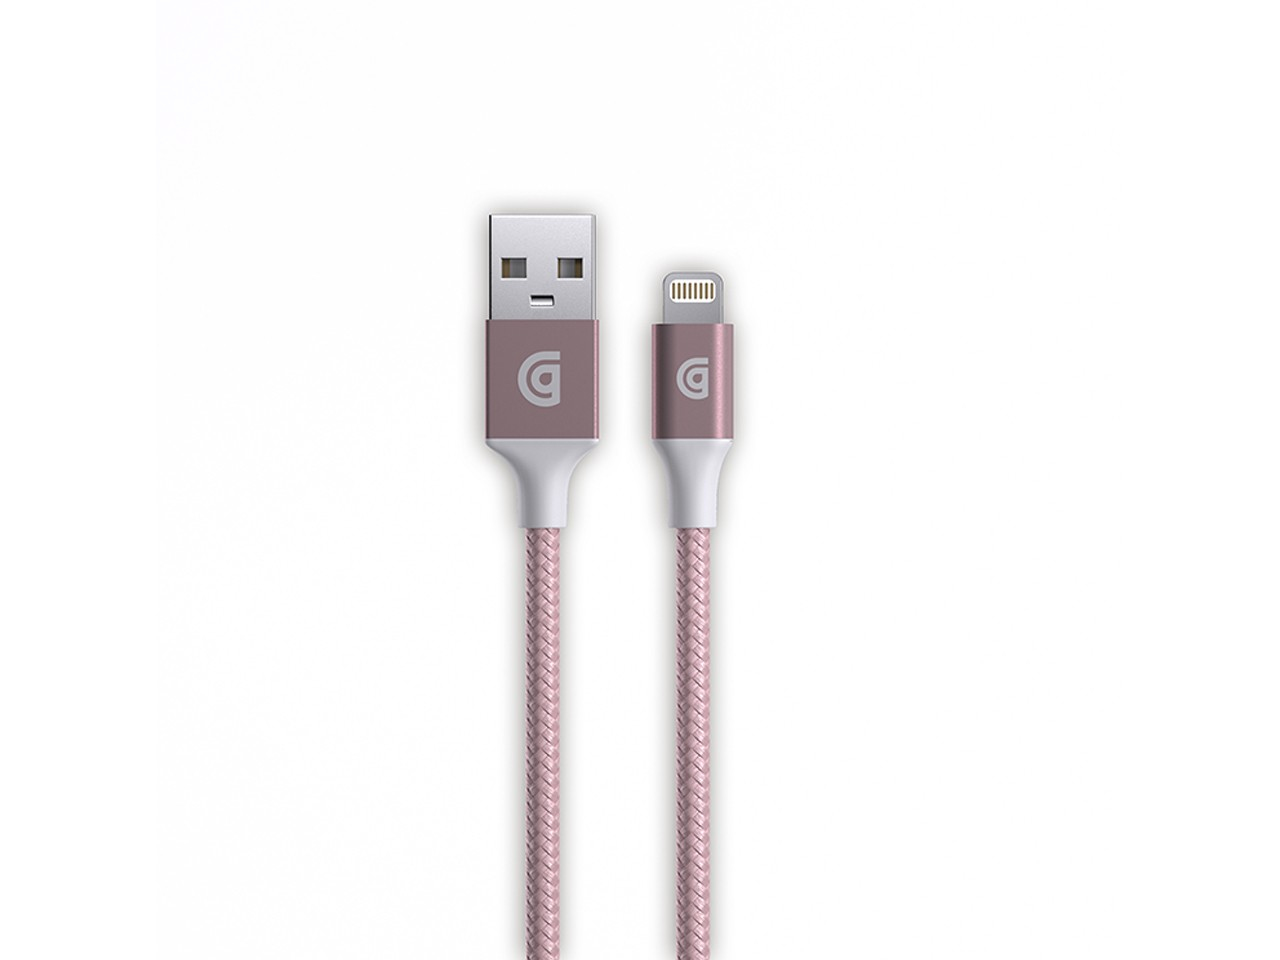 USB To Lightning Cable Premium 1.5m Rose Gold